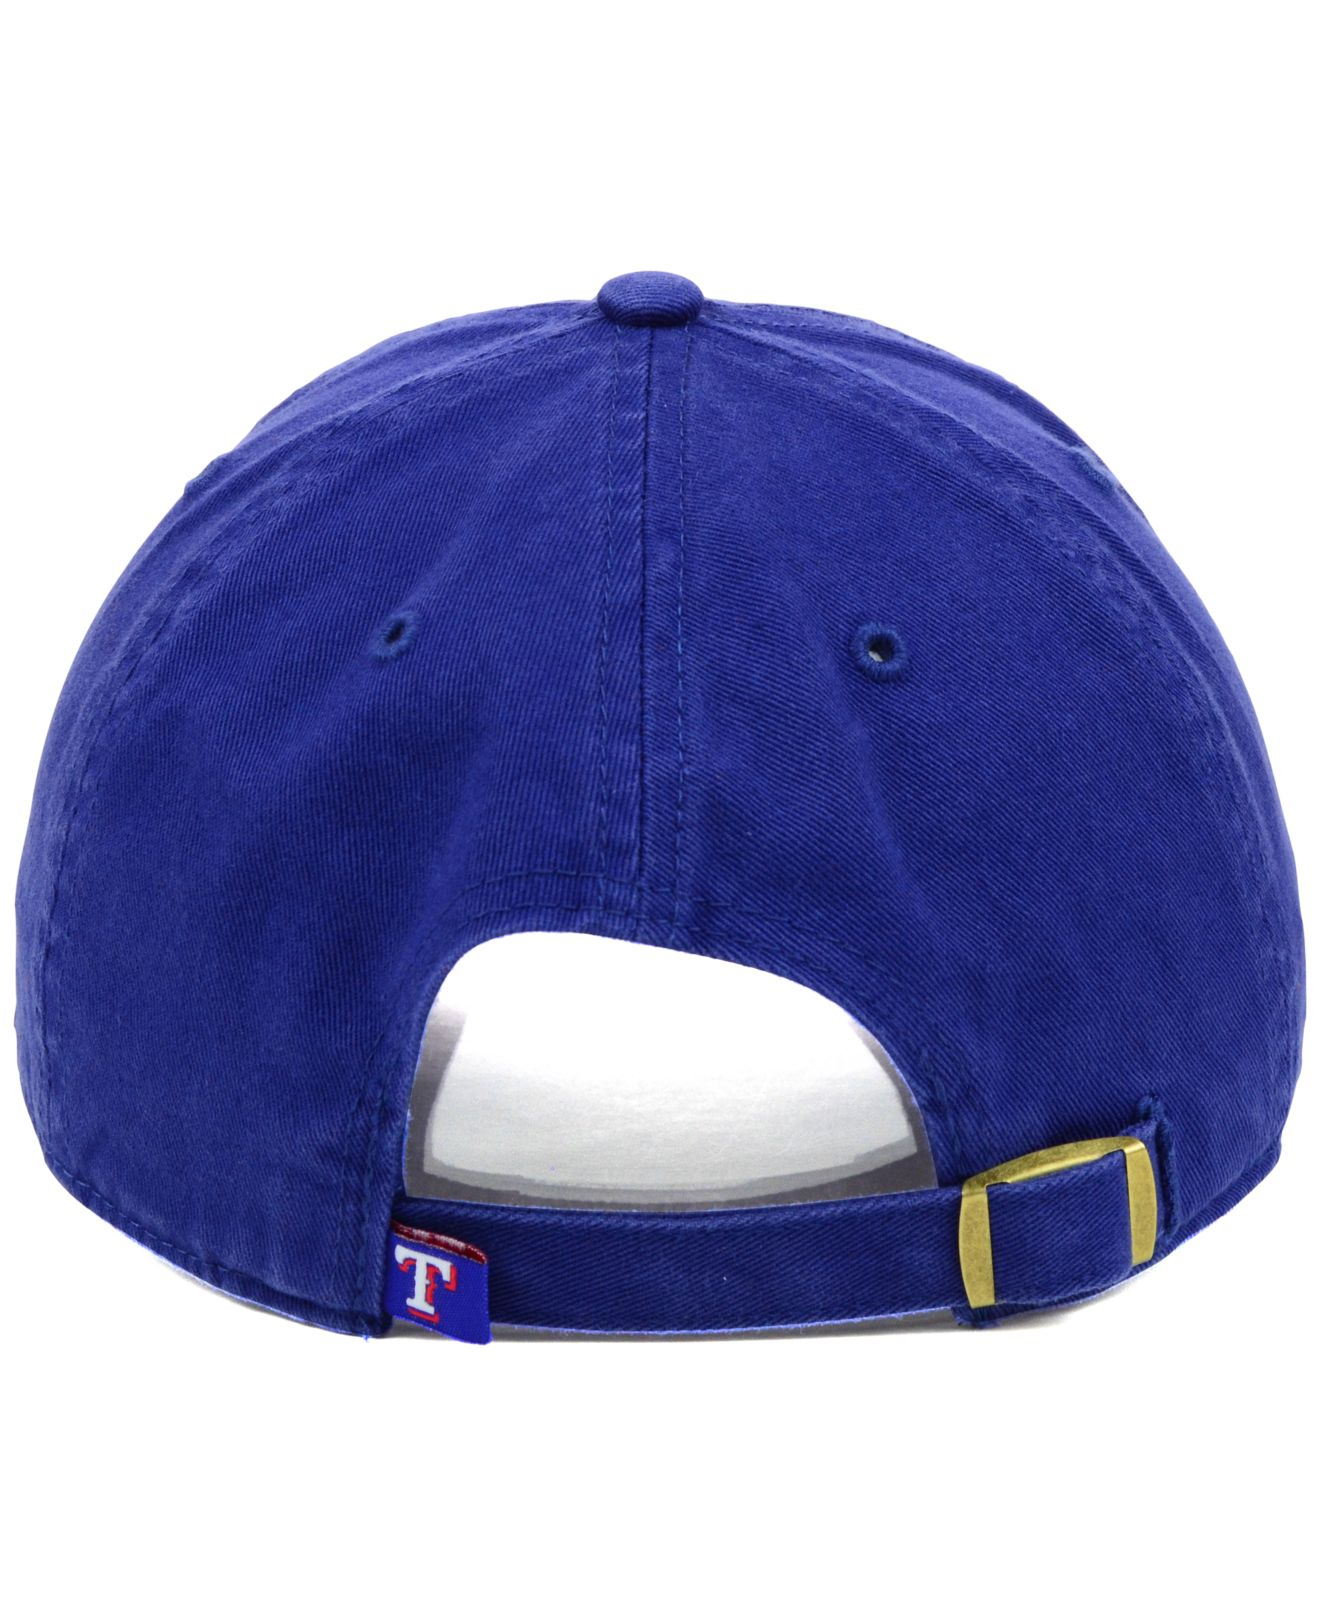 de4ec47e7b8b8 ... lyst 47 brand texas rangers 14 commander cap in blue for men